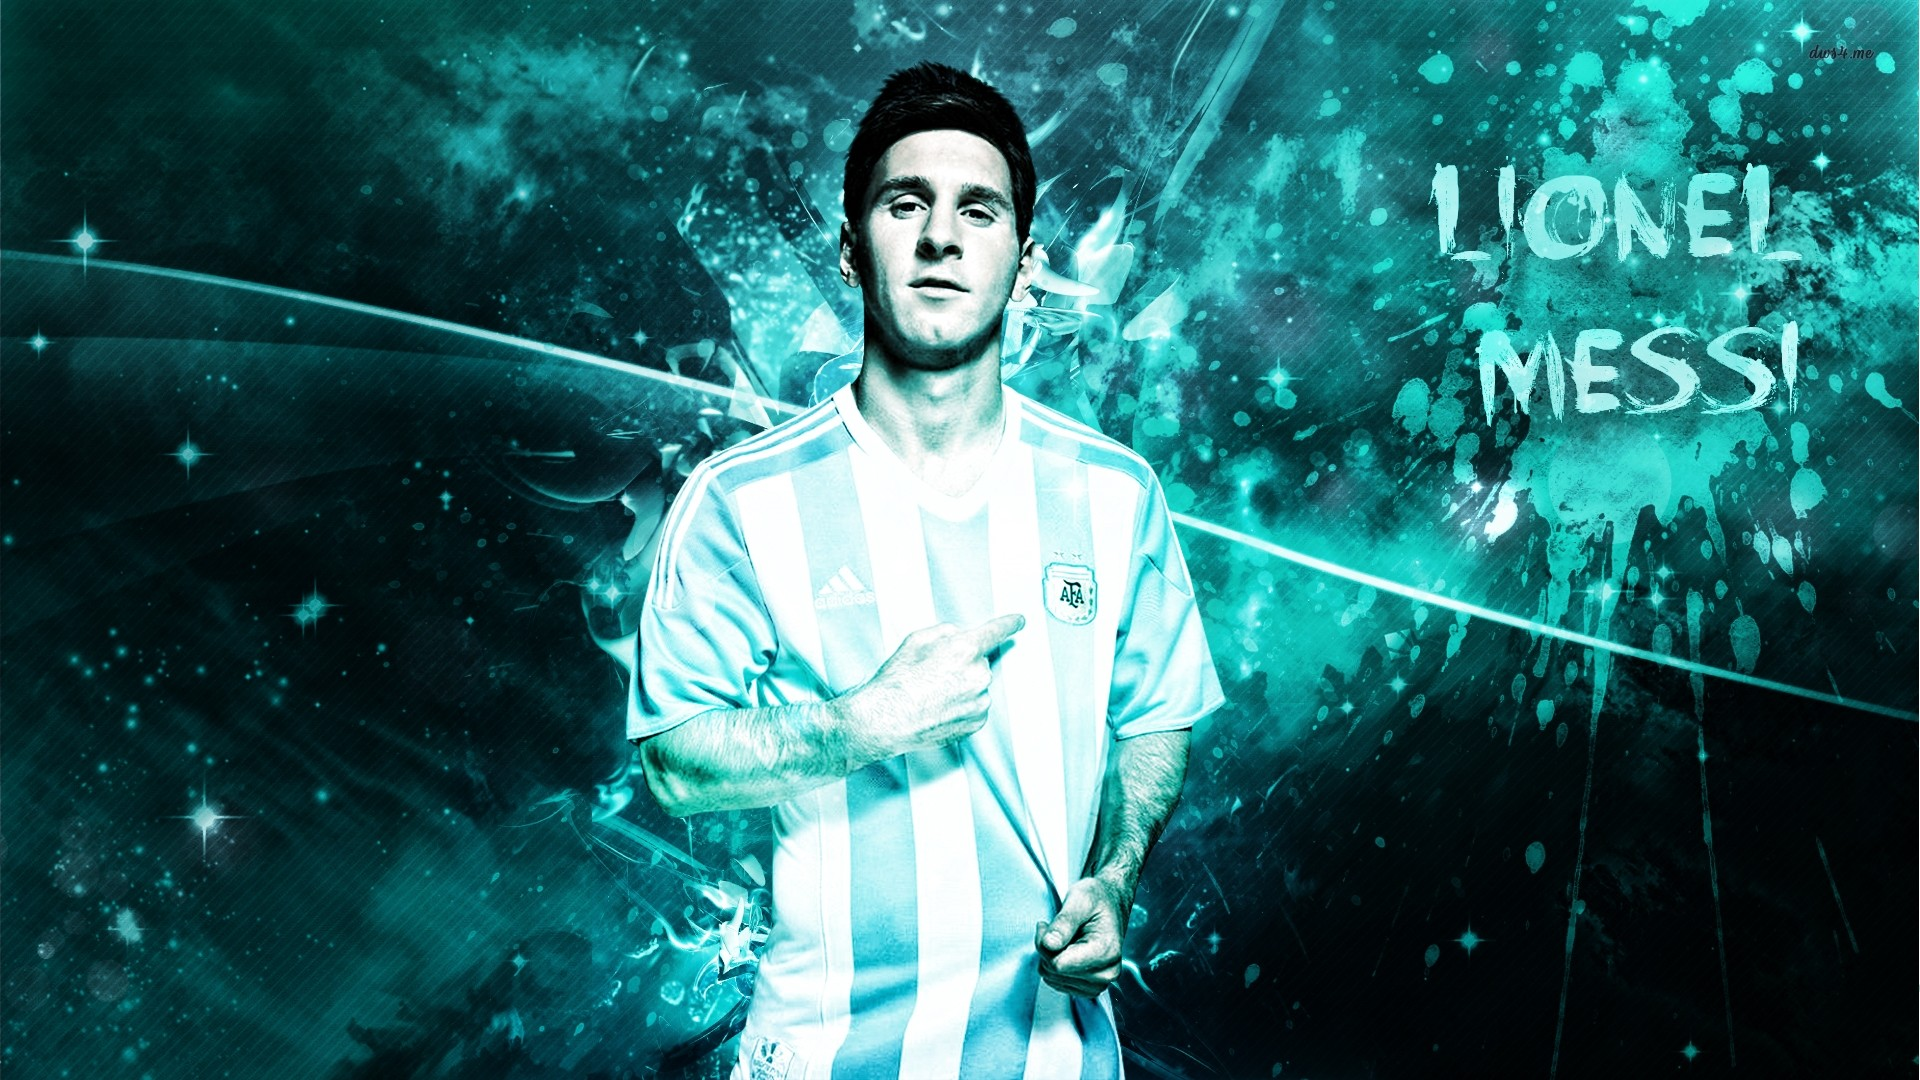 Lionel Messi Free Wallpaper and Background